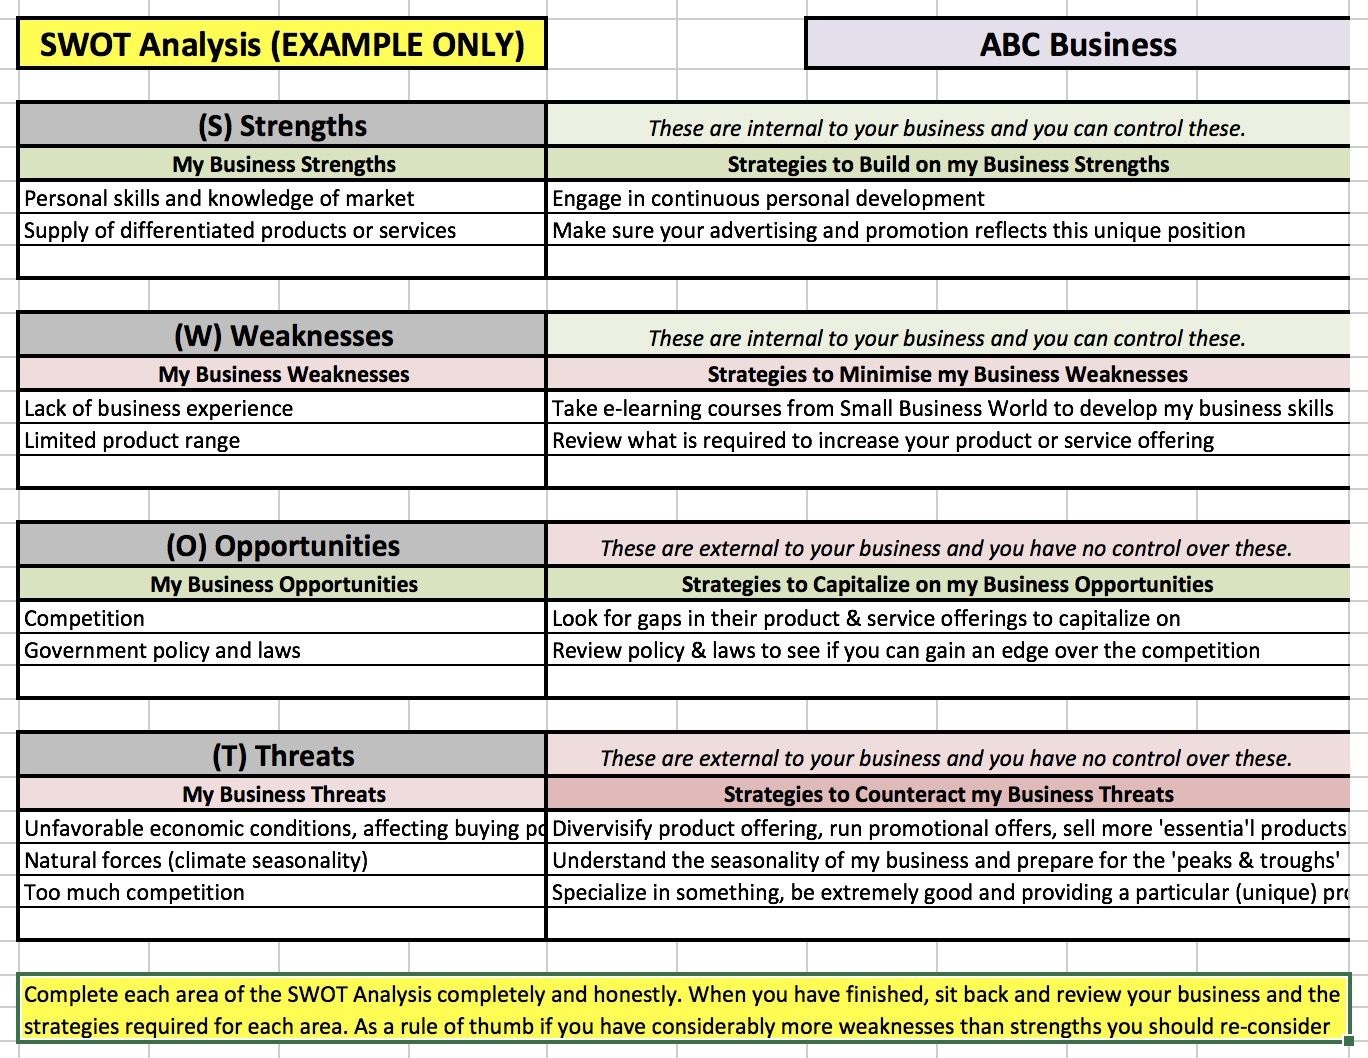 Snapshot of the SWOT analysis - example data is provided